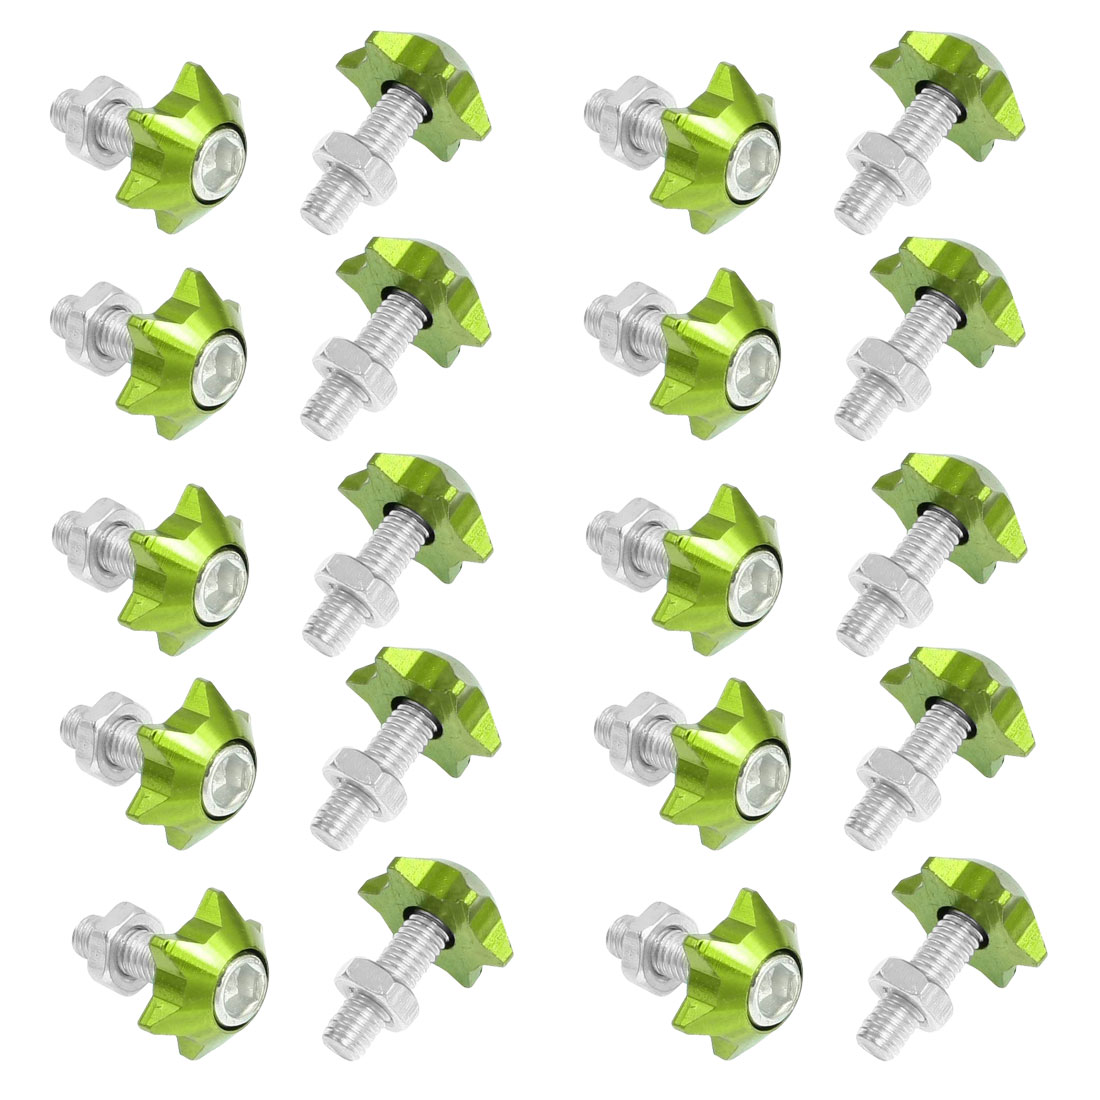 20 Pcs Silver Tone Green Star Shape Car License Plate Bolt Screw